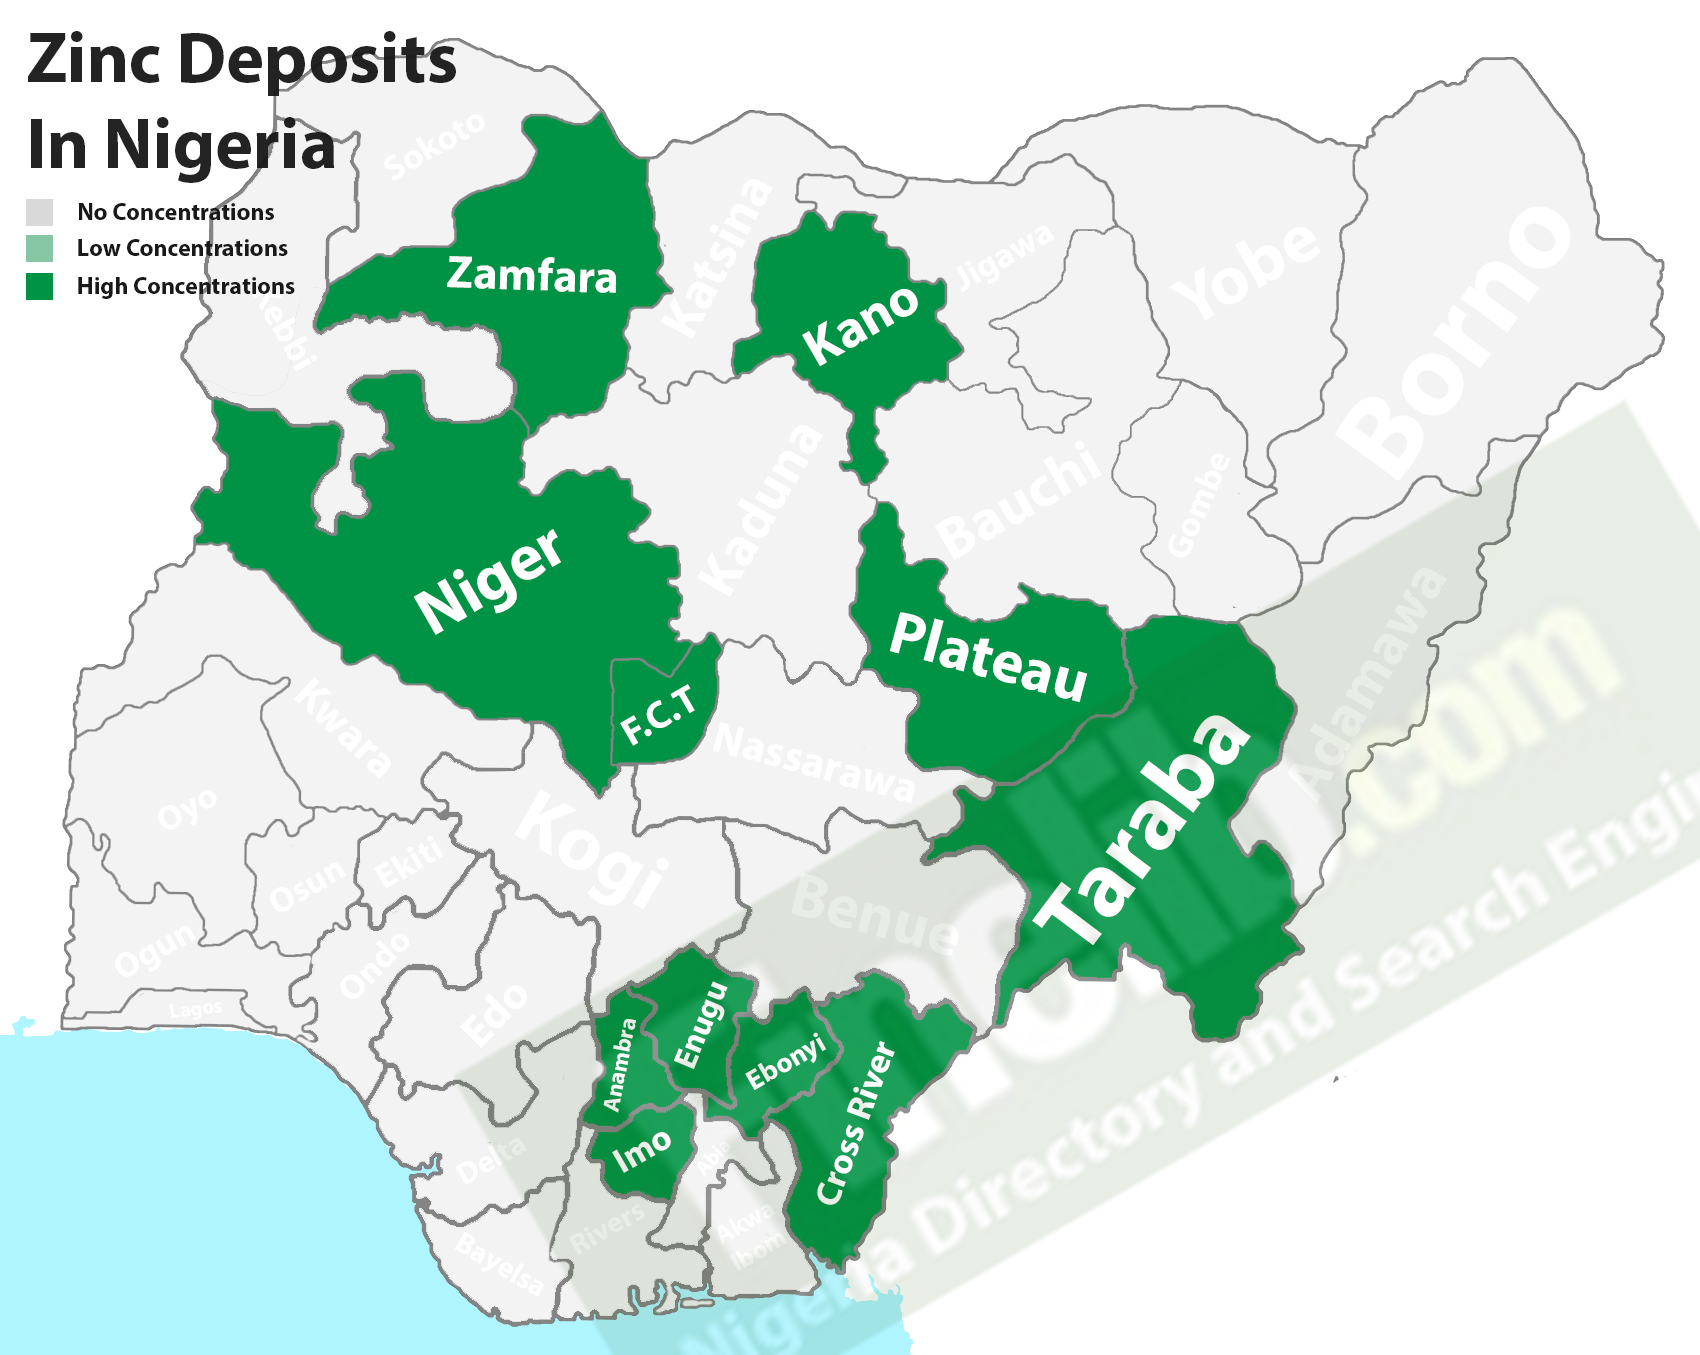 Zinc mineral deposits in Nigeria